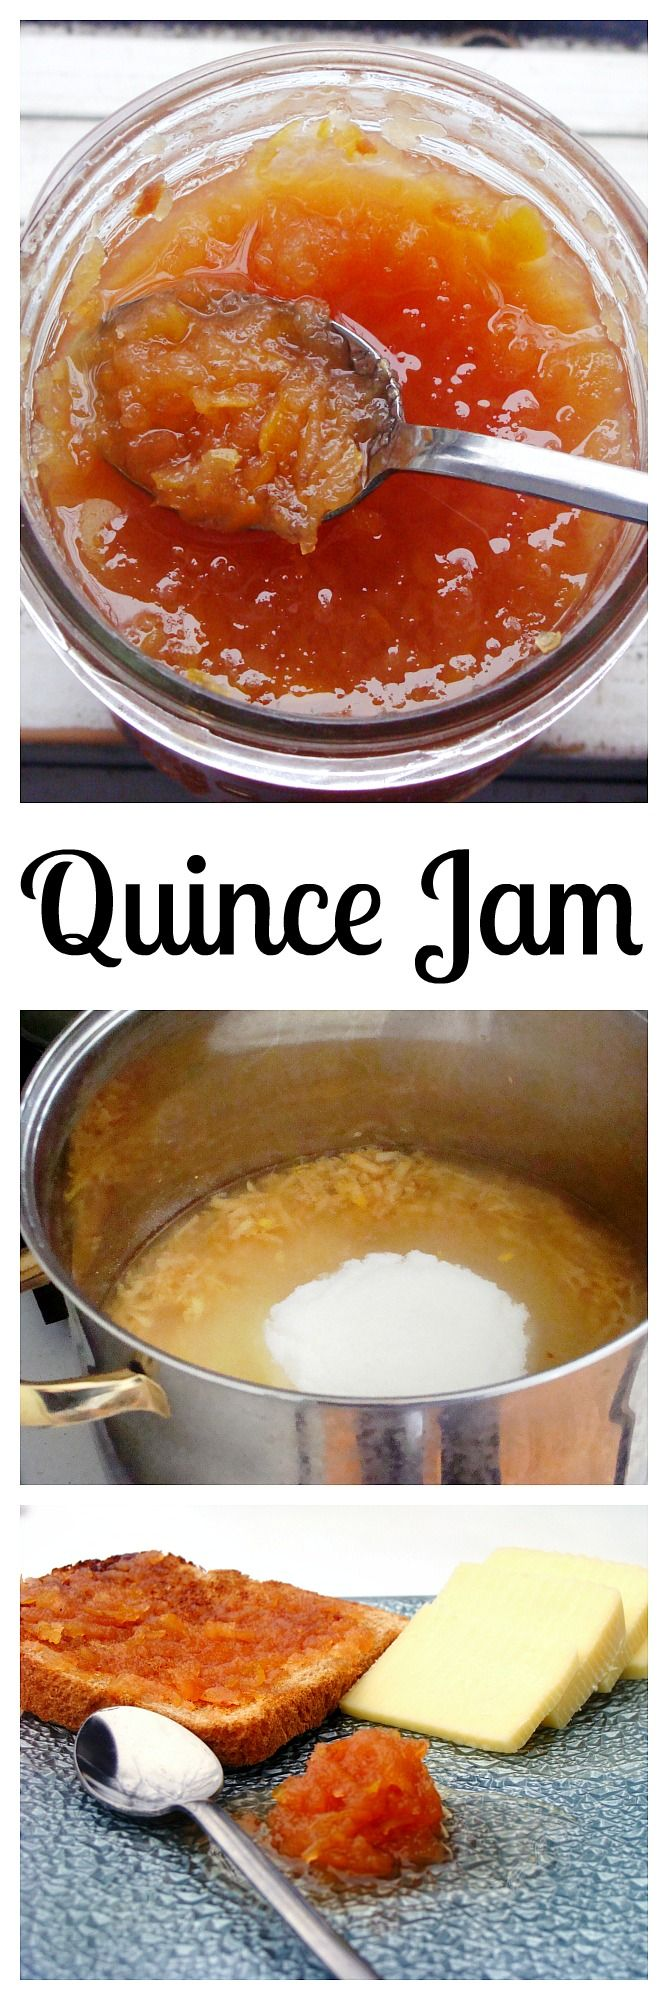 Quince Jam - With quince, sugar, and a little lemon juice ...